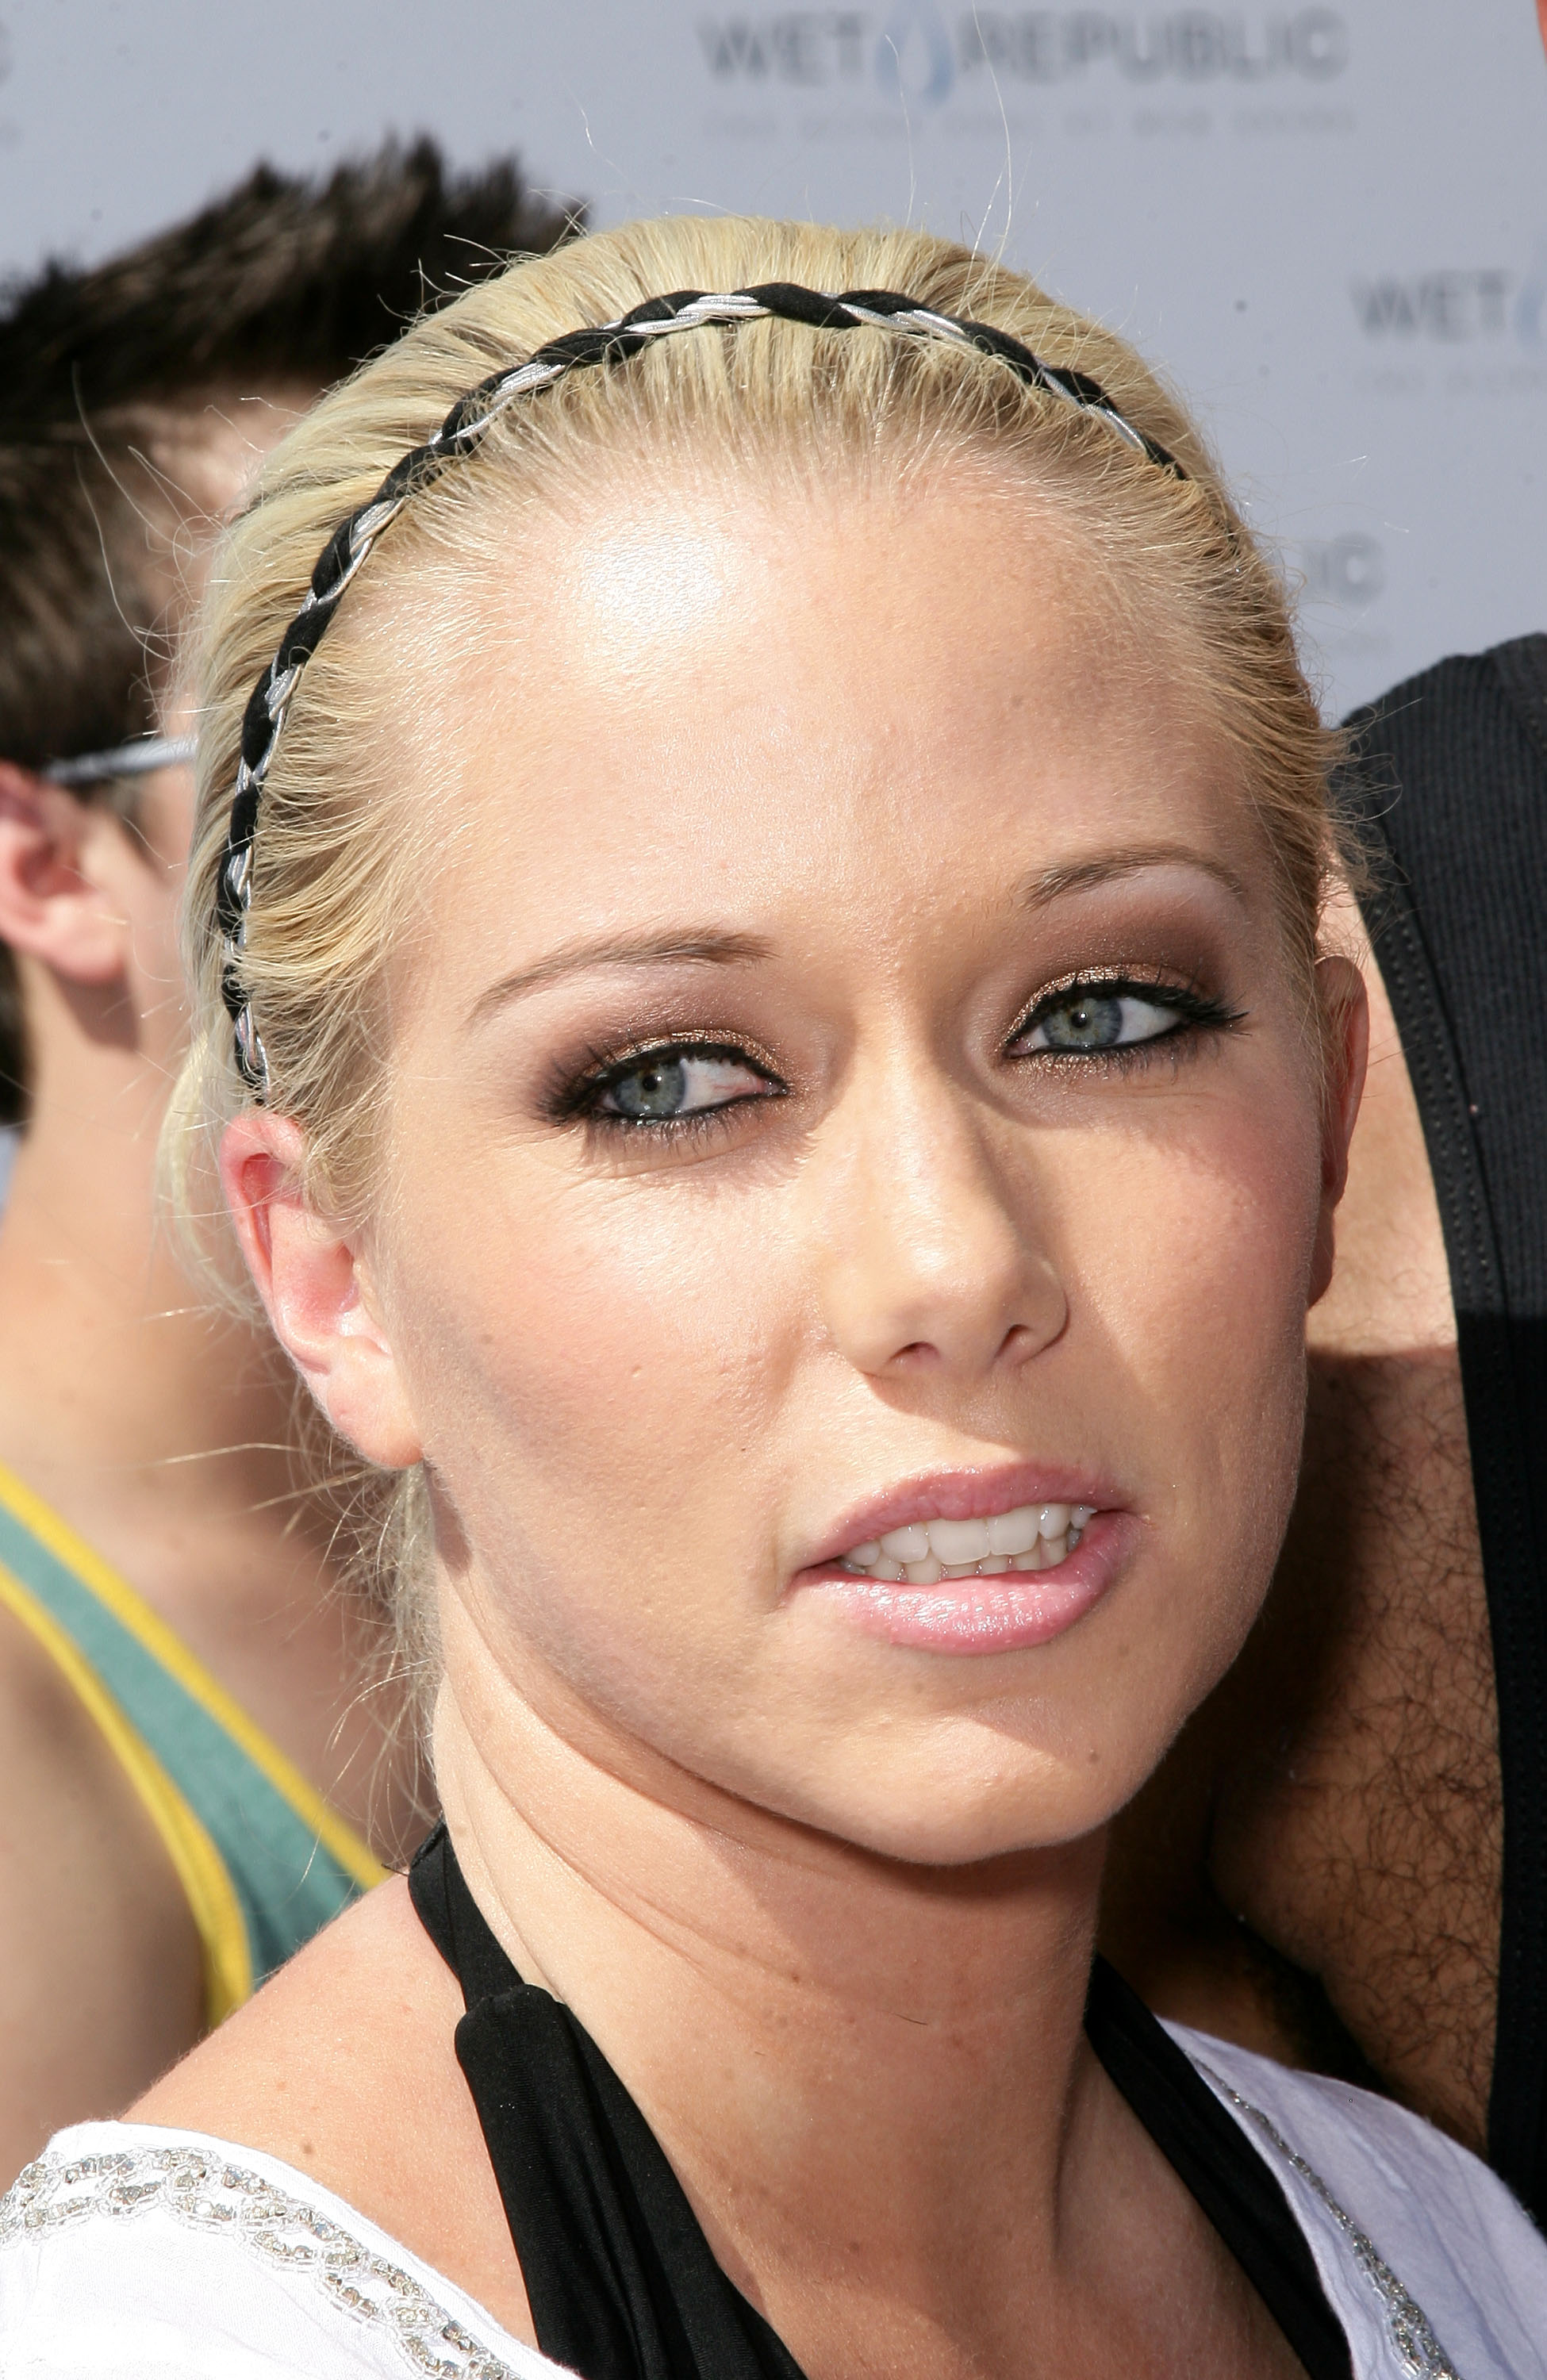 Kendra Wilkinson News, Pictures, and Videos | TMZ.com